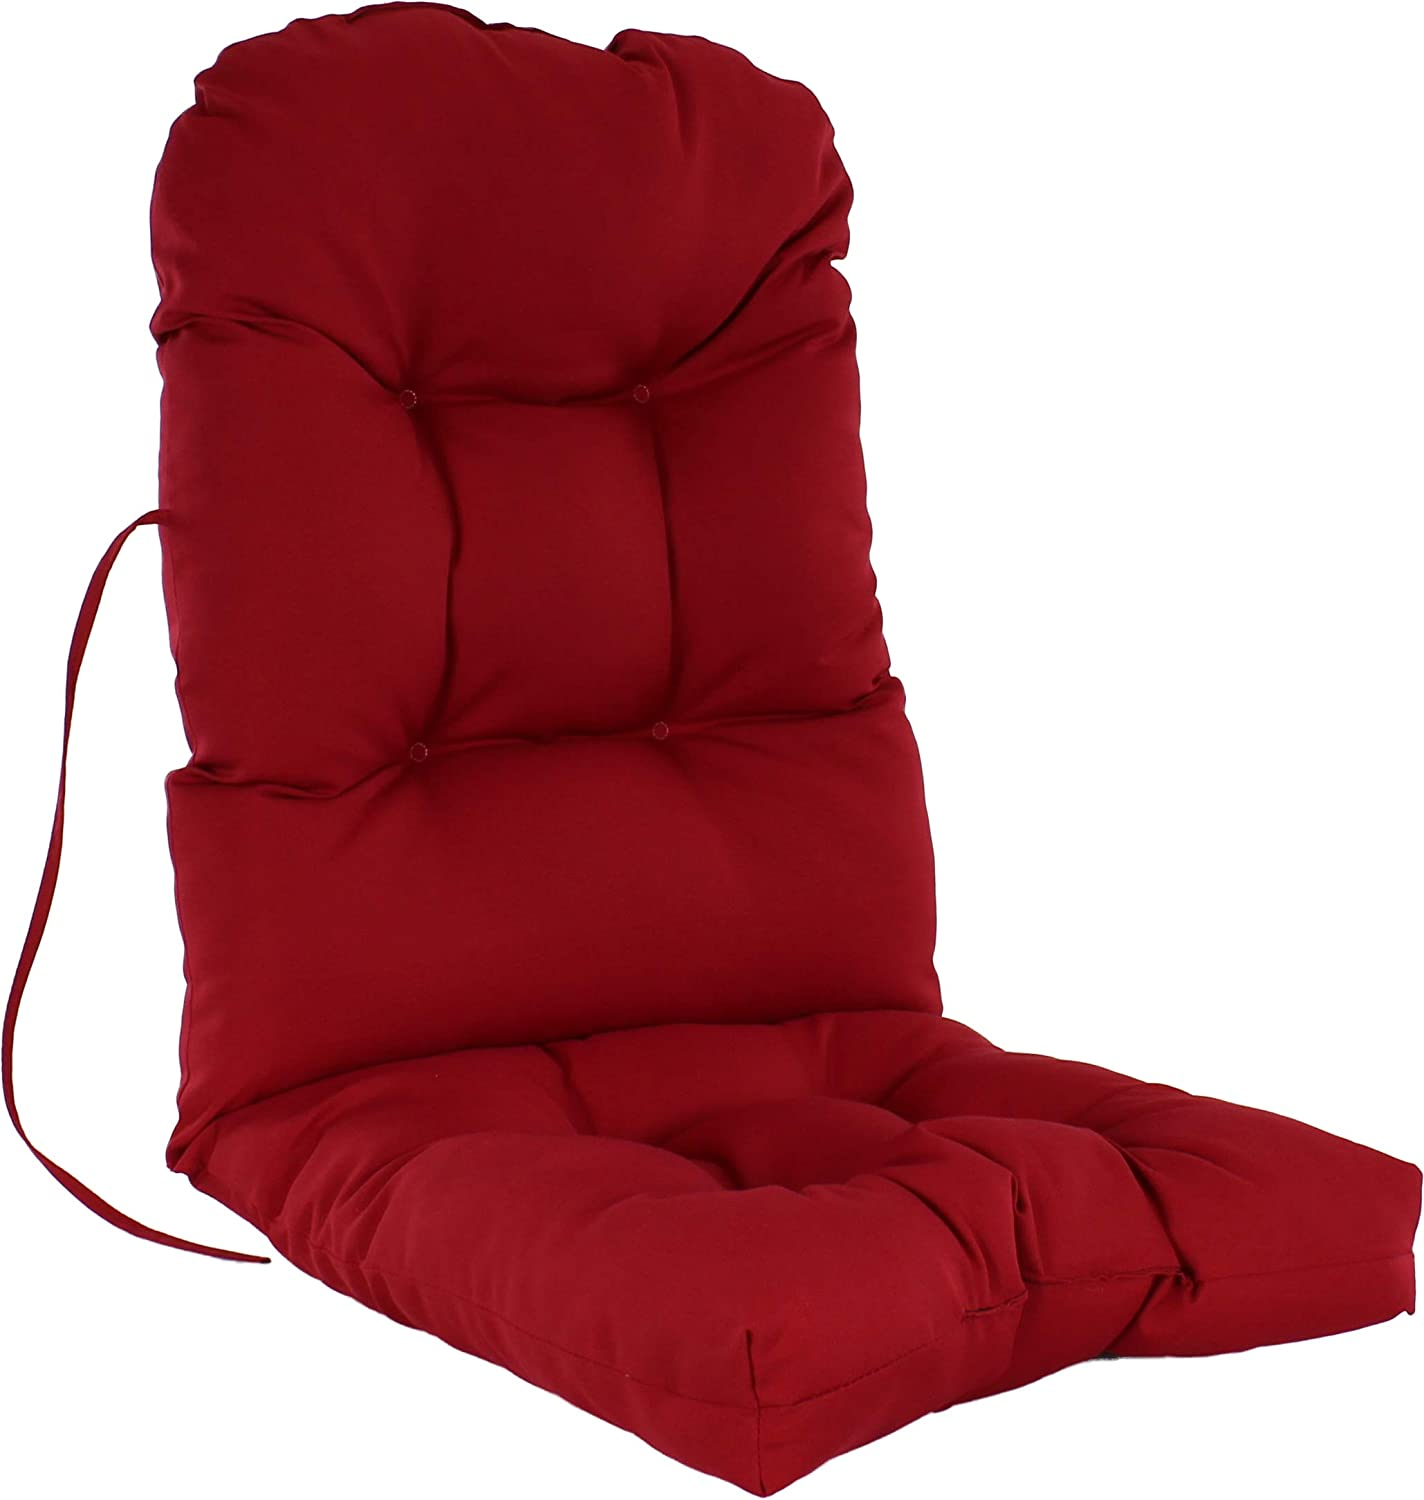 "College Covers Everything Comfy Indoor/Outdoor Adirondack Patio Seat Cushion, 49"" x 20"" x 3"", Red"